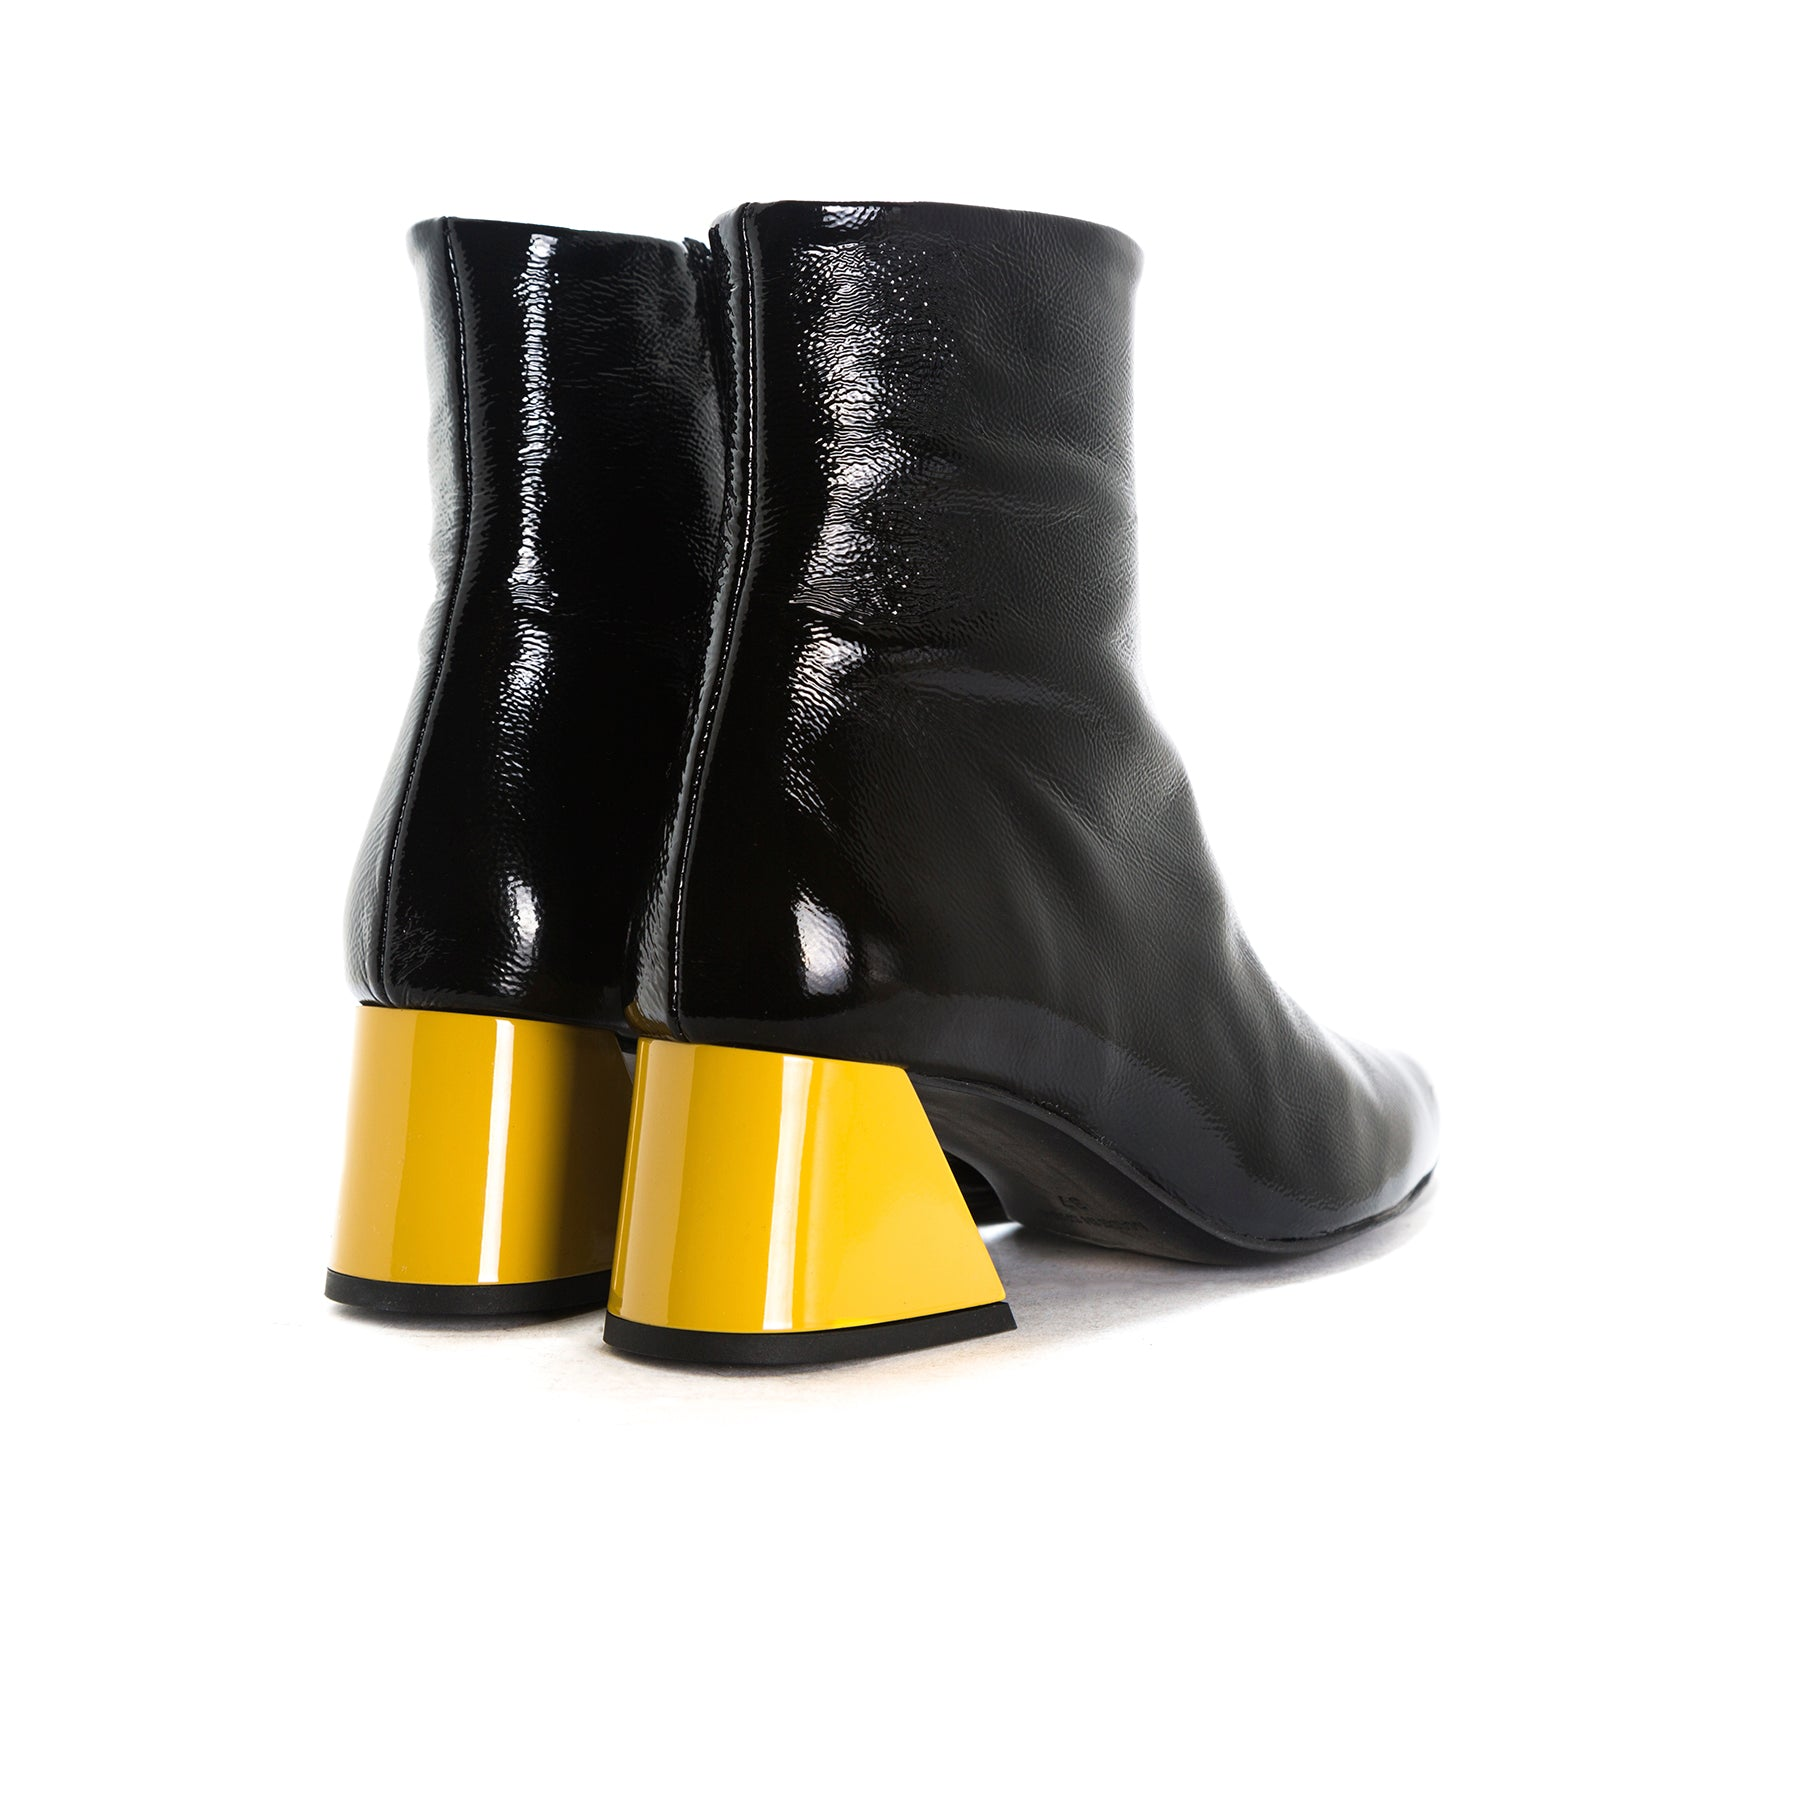 Salonika Black Naplack Ankle Boots